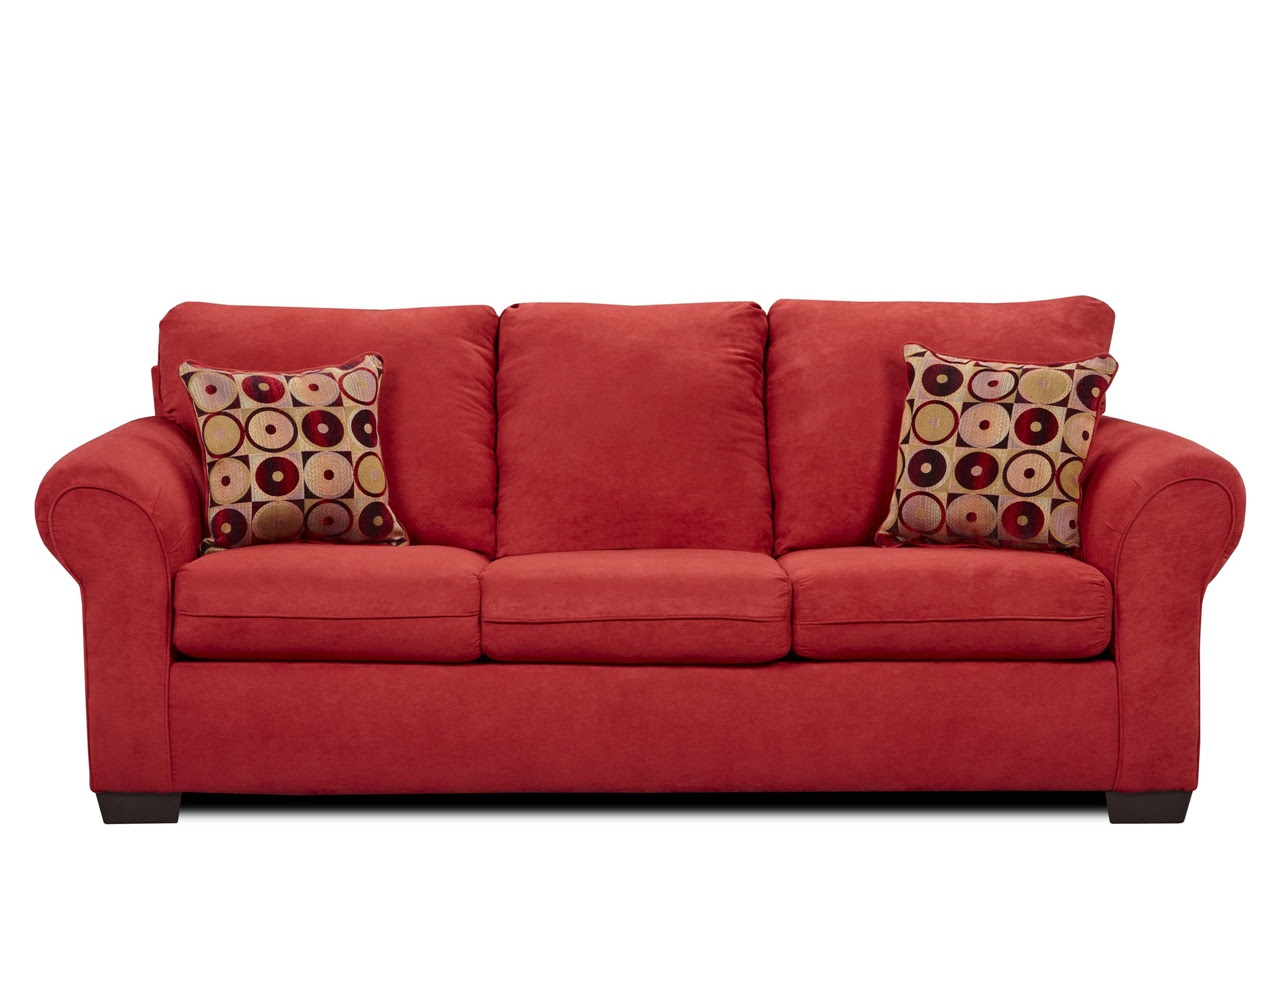 discount red couches